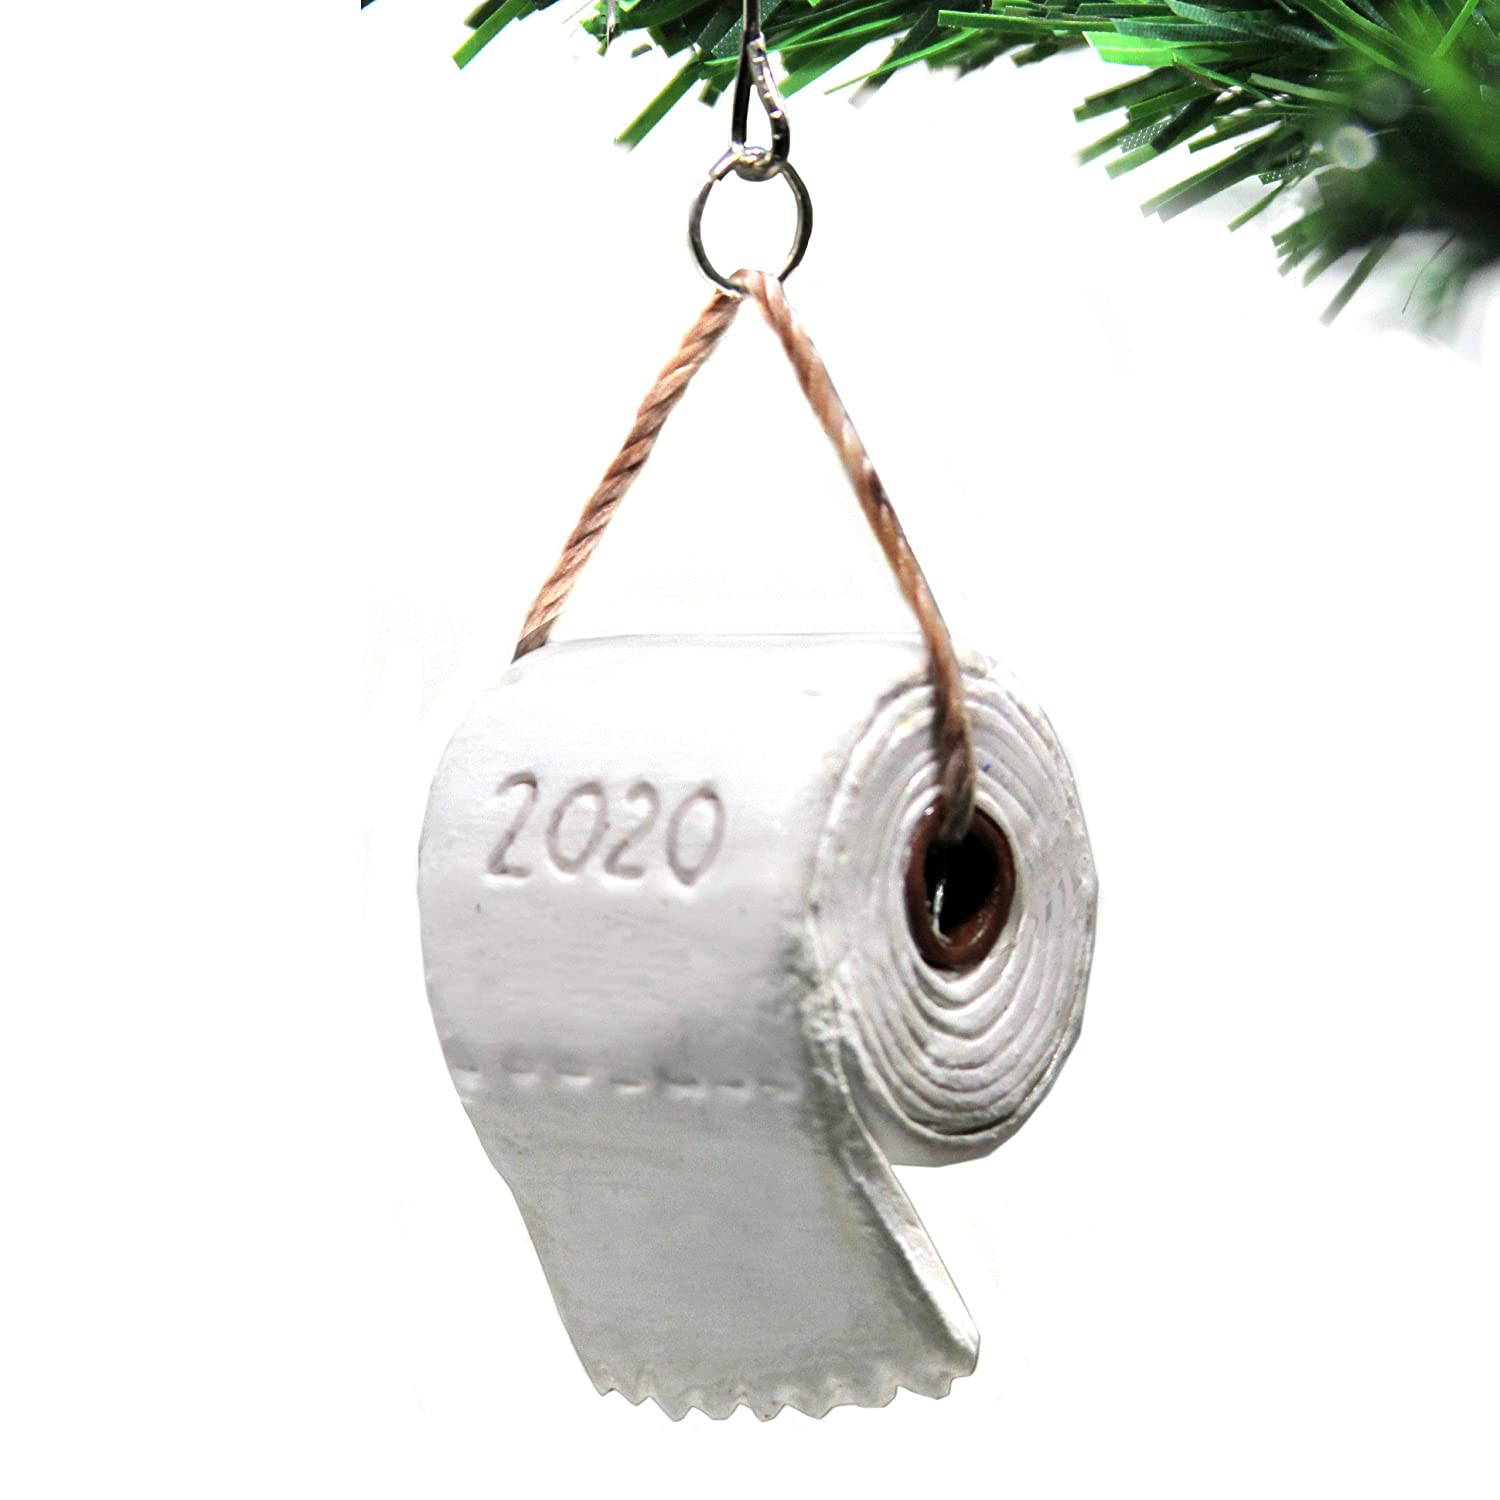 Funny 2020 Roll Of Toilet Paper Christmas Ornament